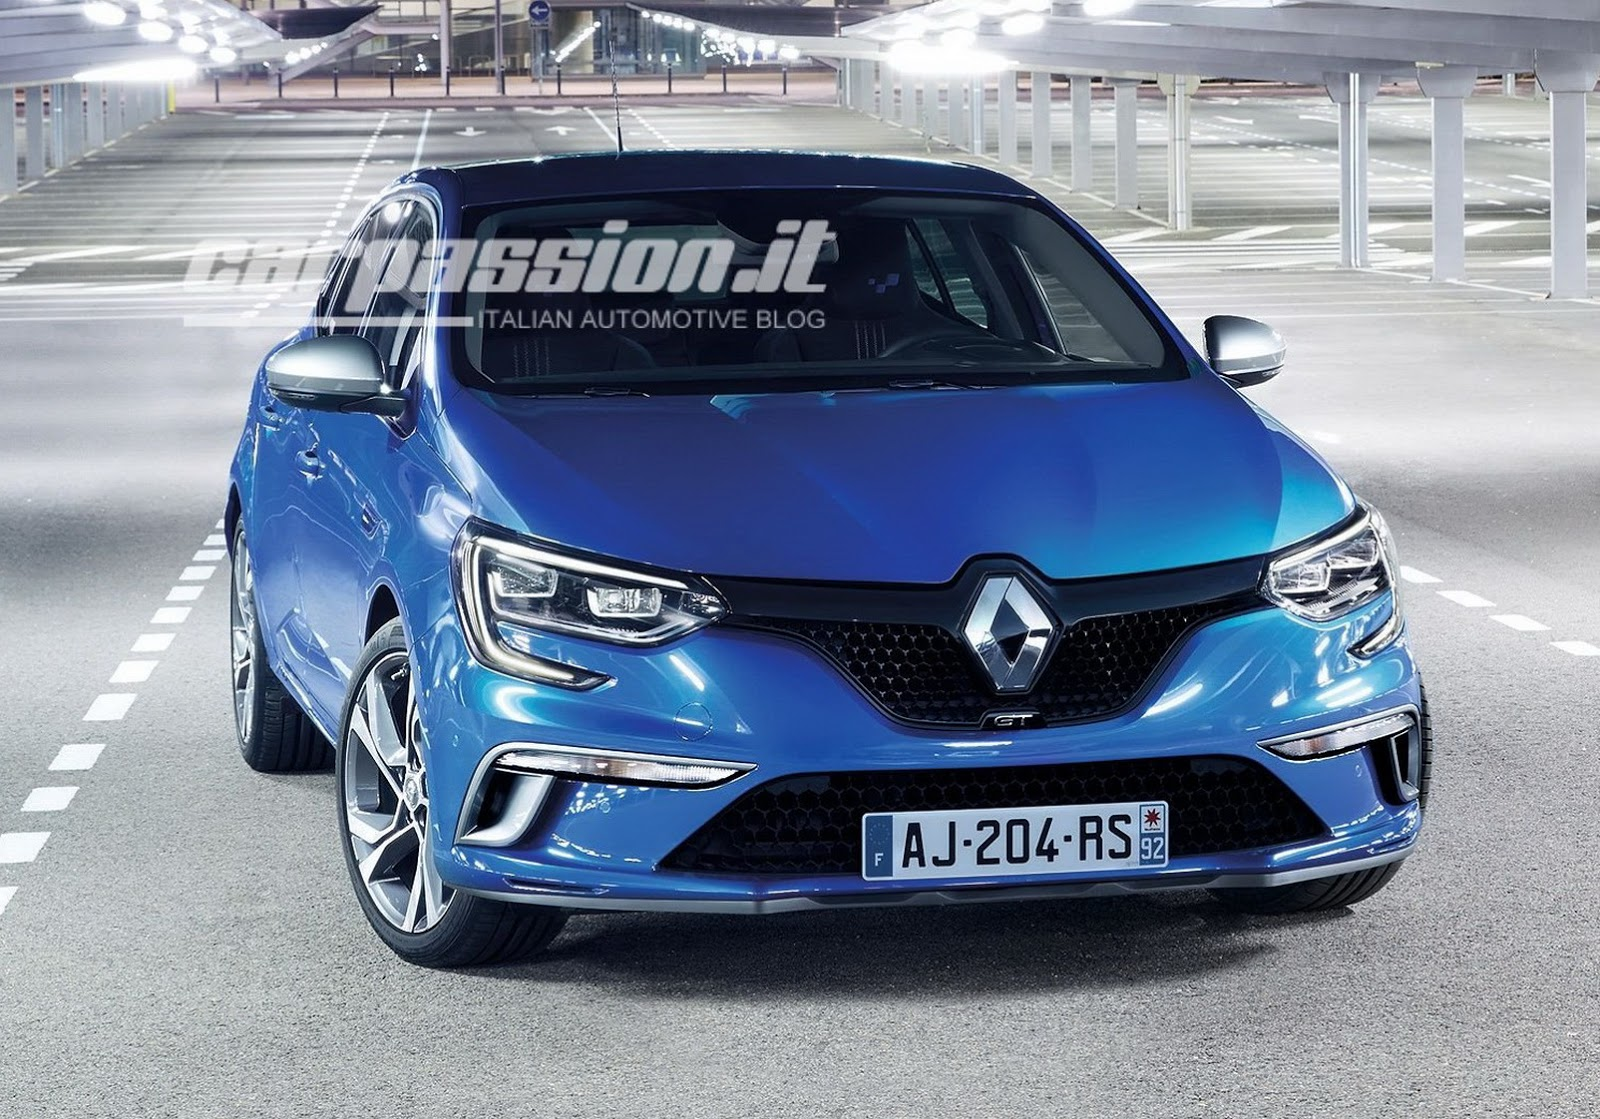 all new 2016 renault megane revealed in official photos carscoops. Black Bedroom Furniture Sets. Home Design Ideas